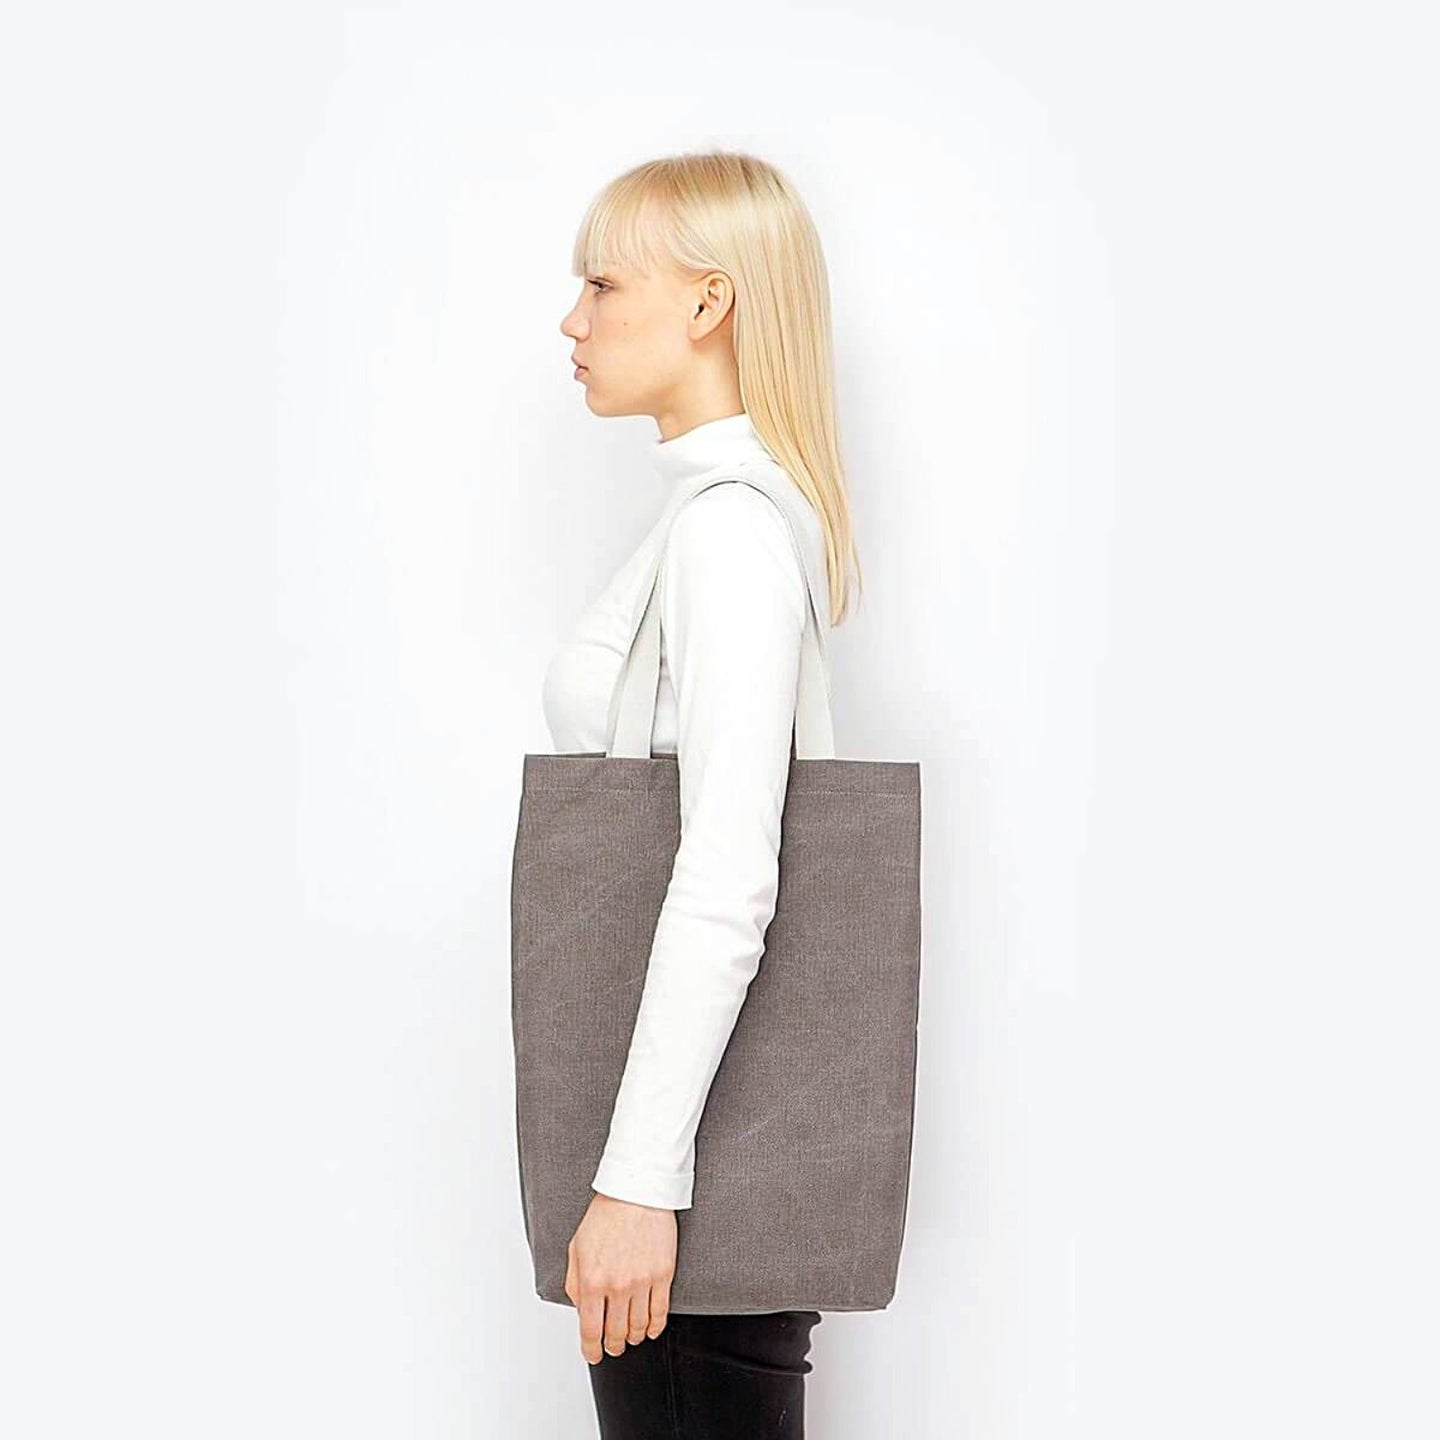 FINN BAG ORIGINAL IN GREY - Harvest Beauty